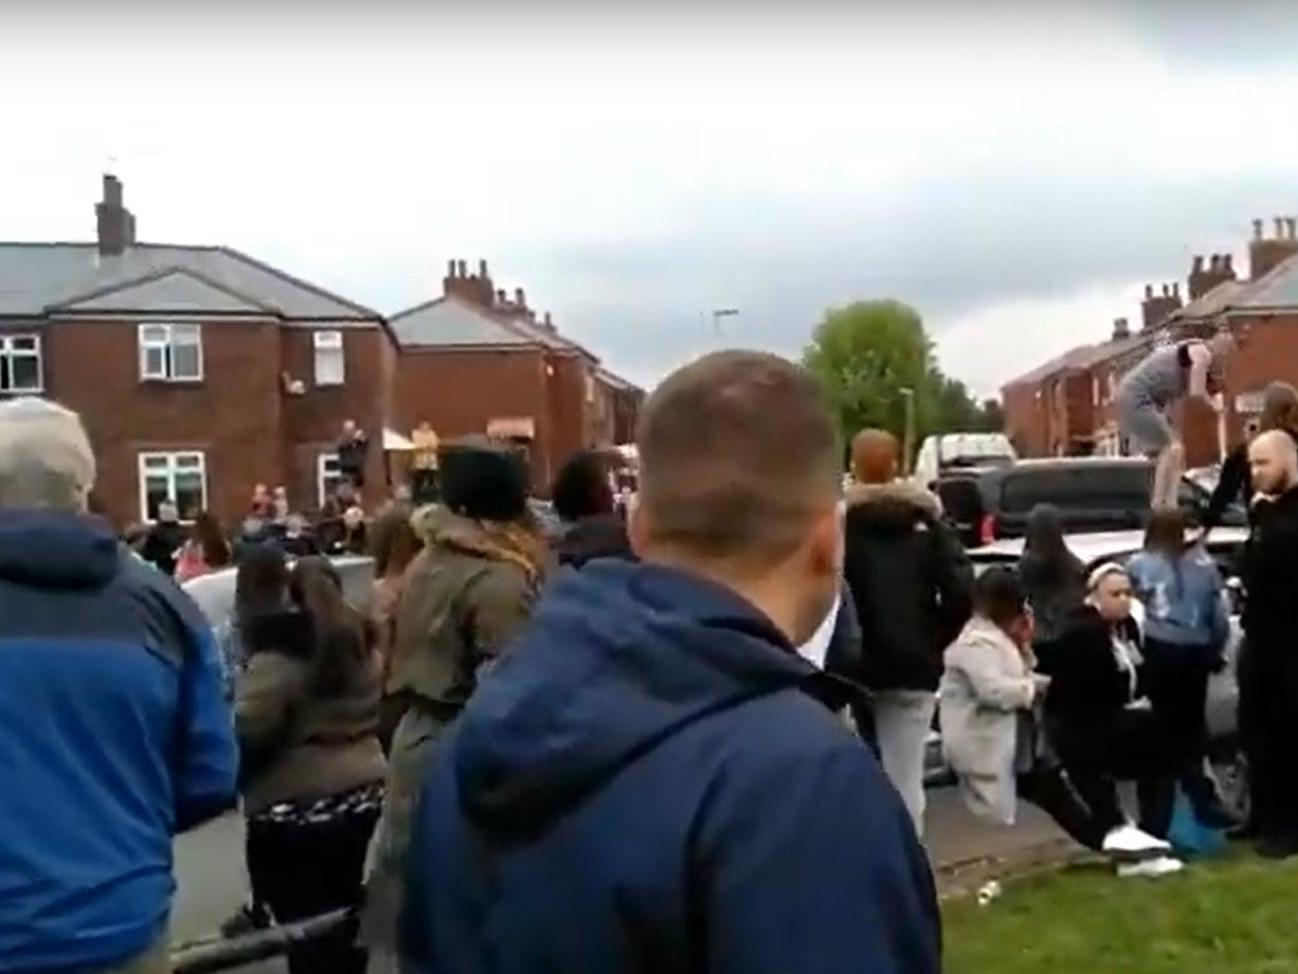 Tommy Robinson: 13 suspects arrested over disorder by 'Muslim Defence League' at election rally